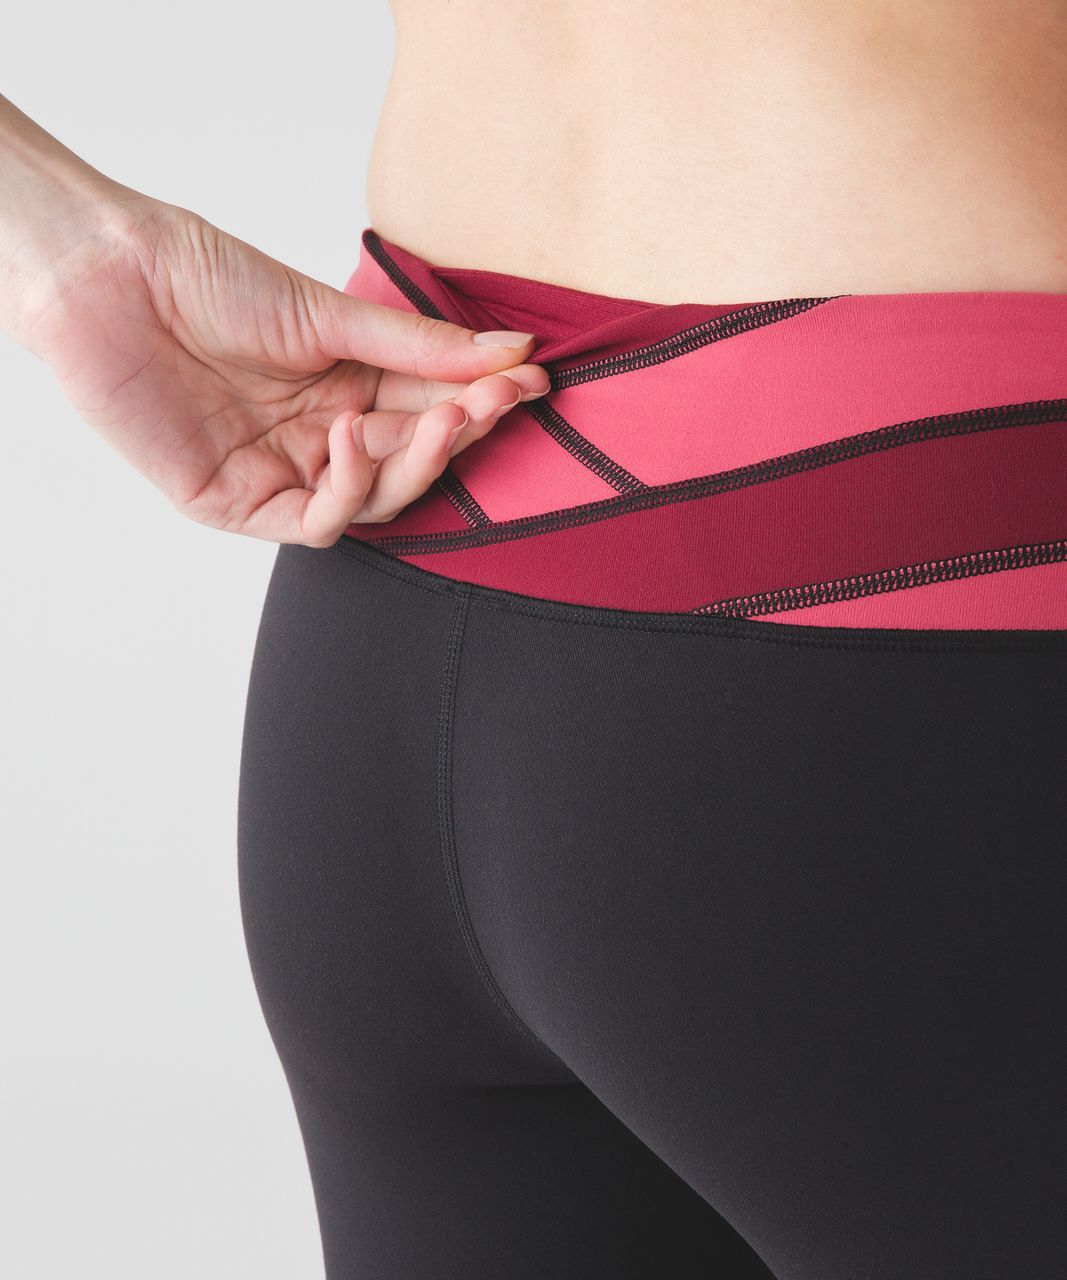 Lululemon Wunder Under Pant III - Black / Fireside Red / Rosewood